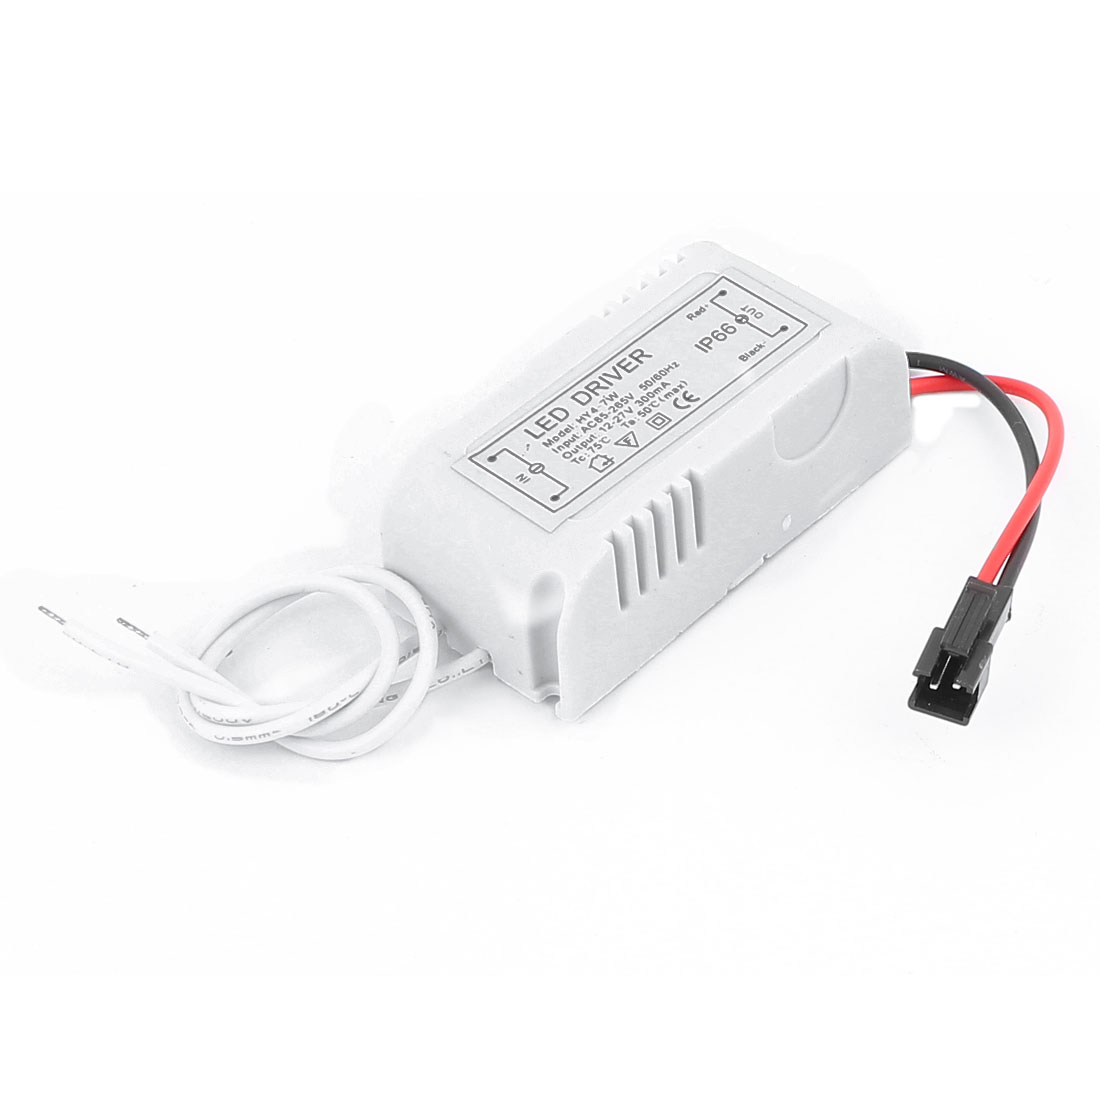 AC 85-265V Driver Power Supply Adapter White for 4-7 1W LED Strip Light Lamp